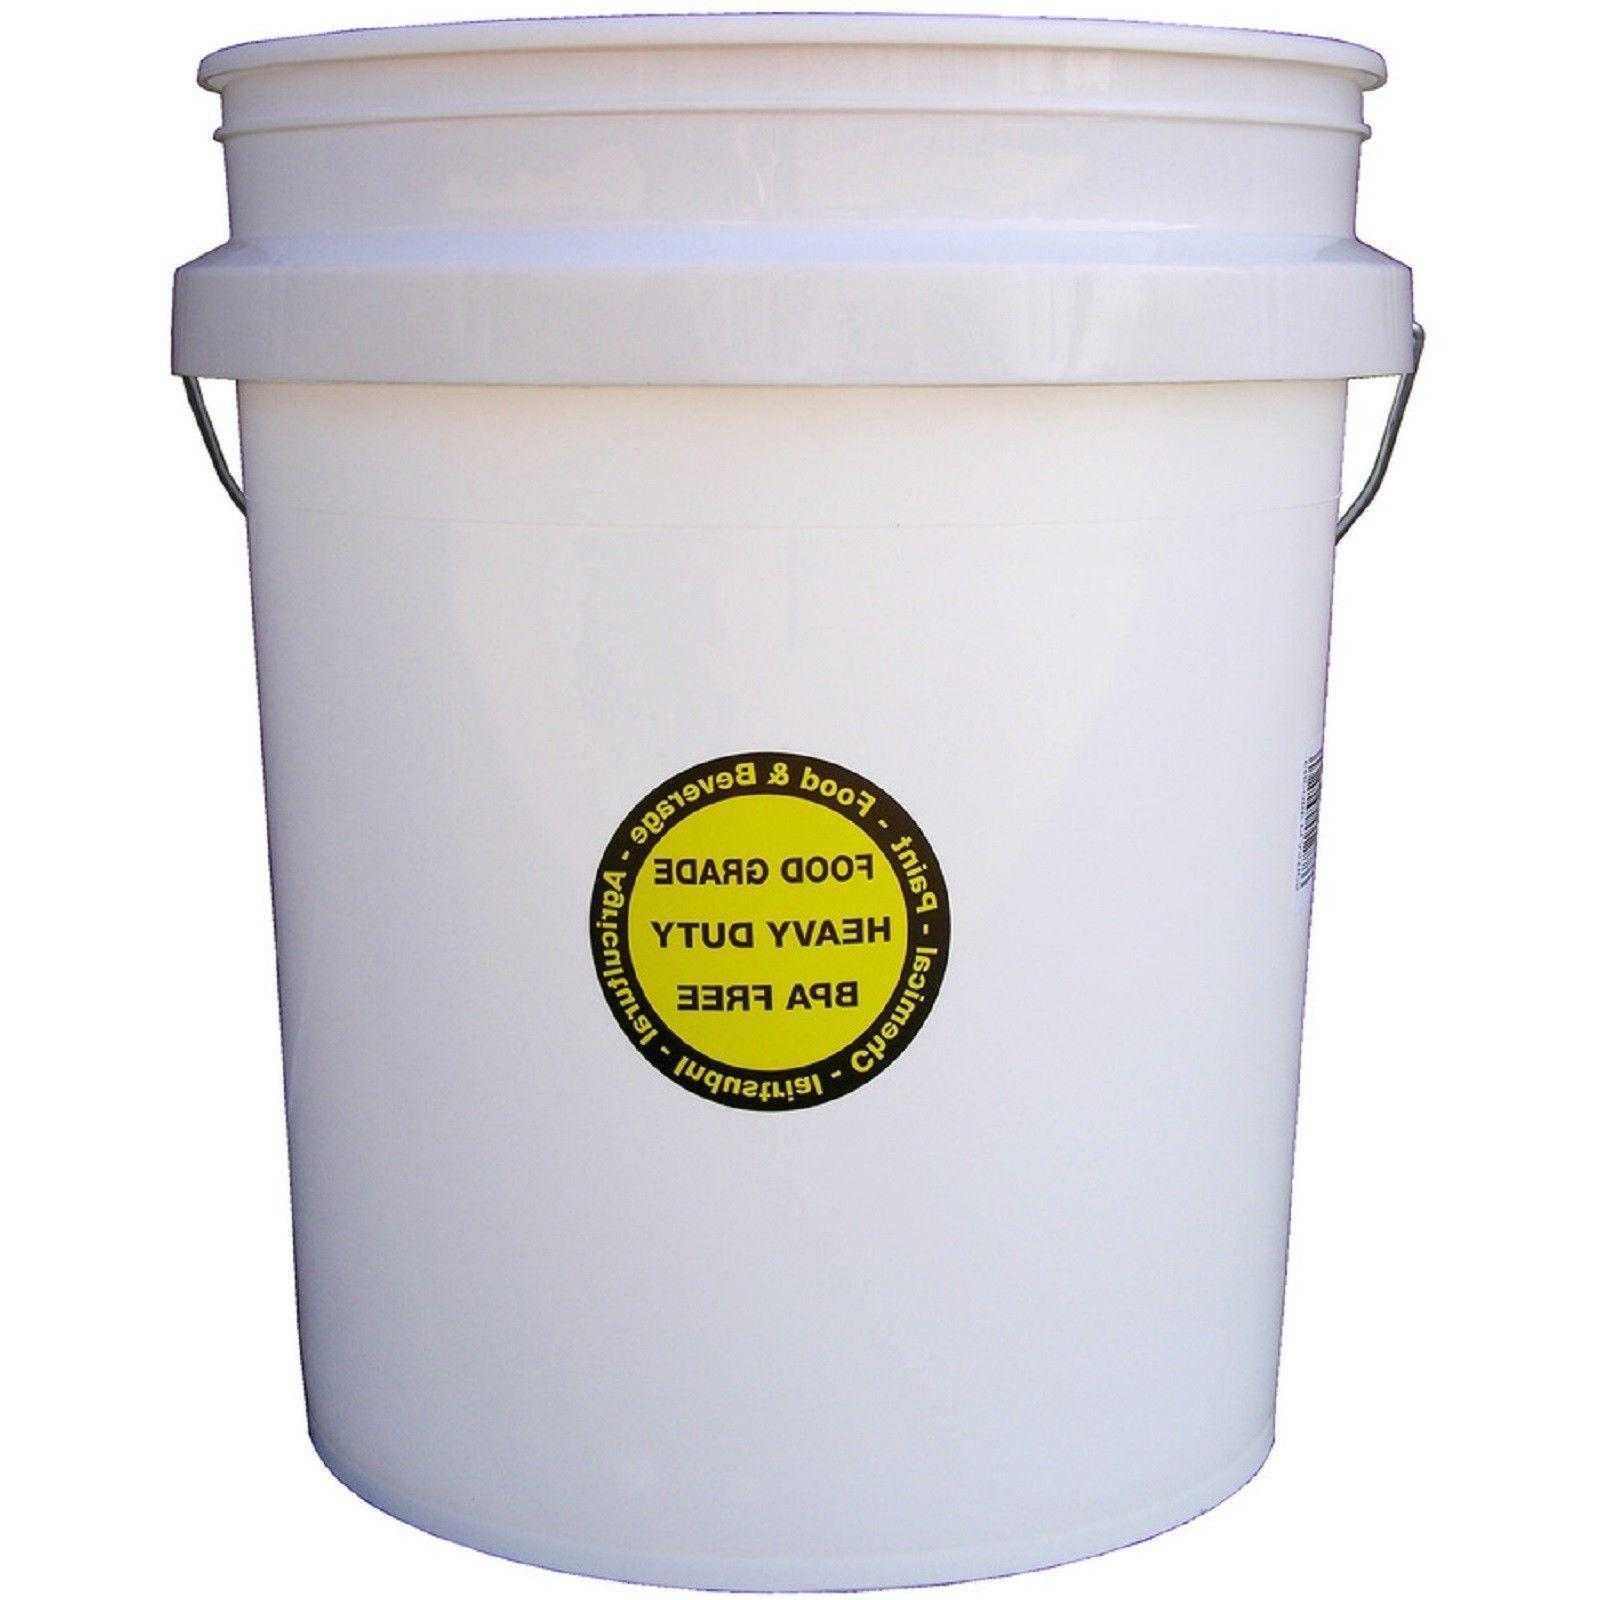 5 Gallon Bucket Lid Commercial Food Durable Pail